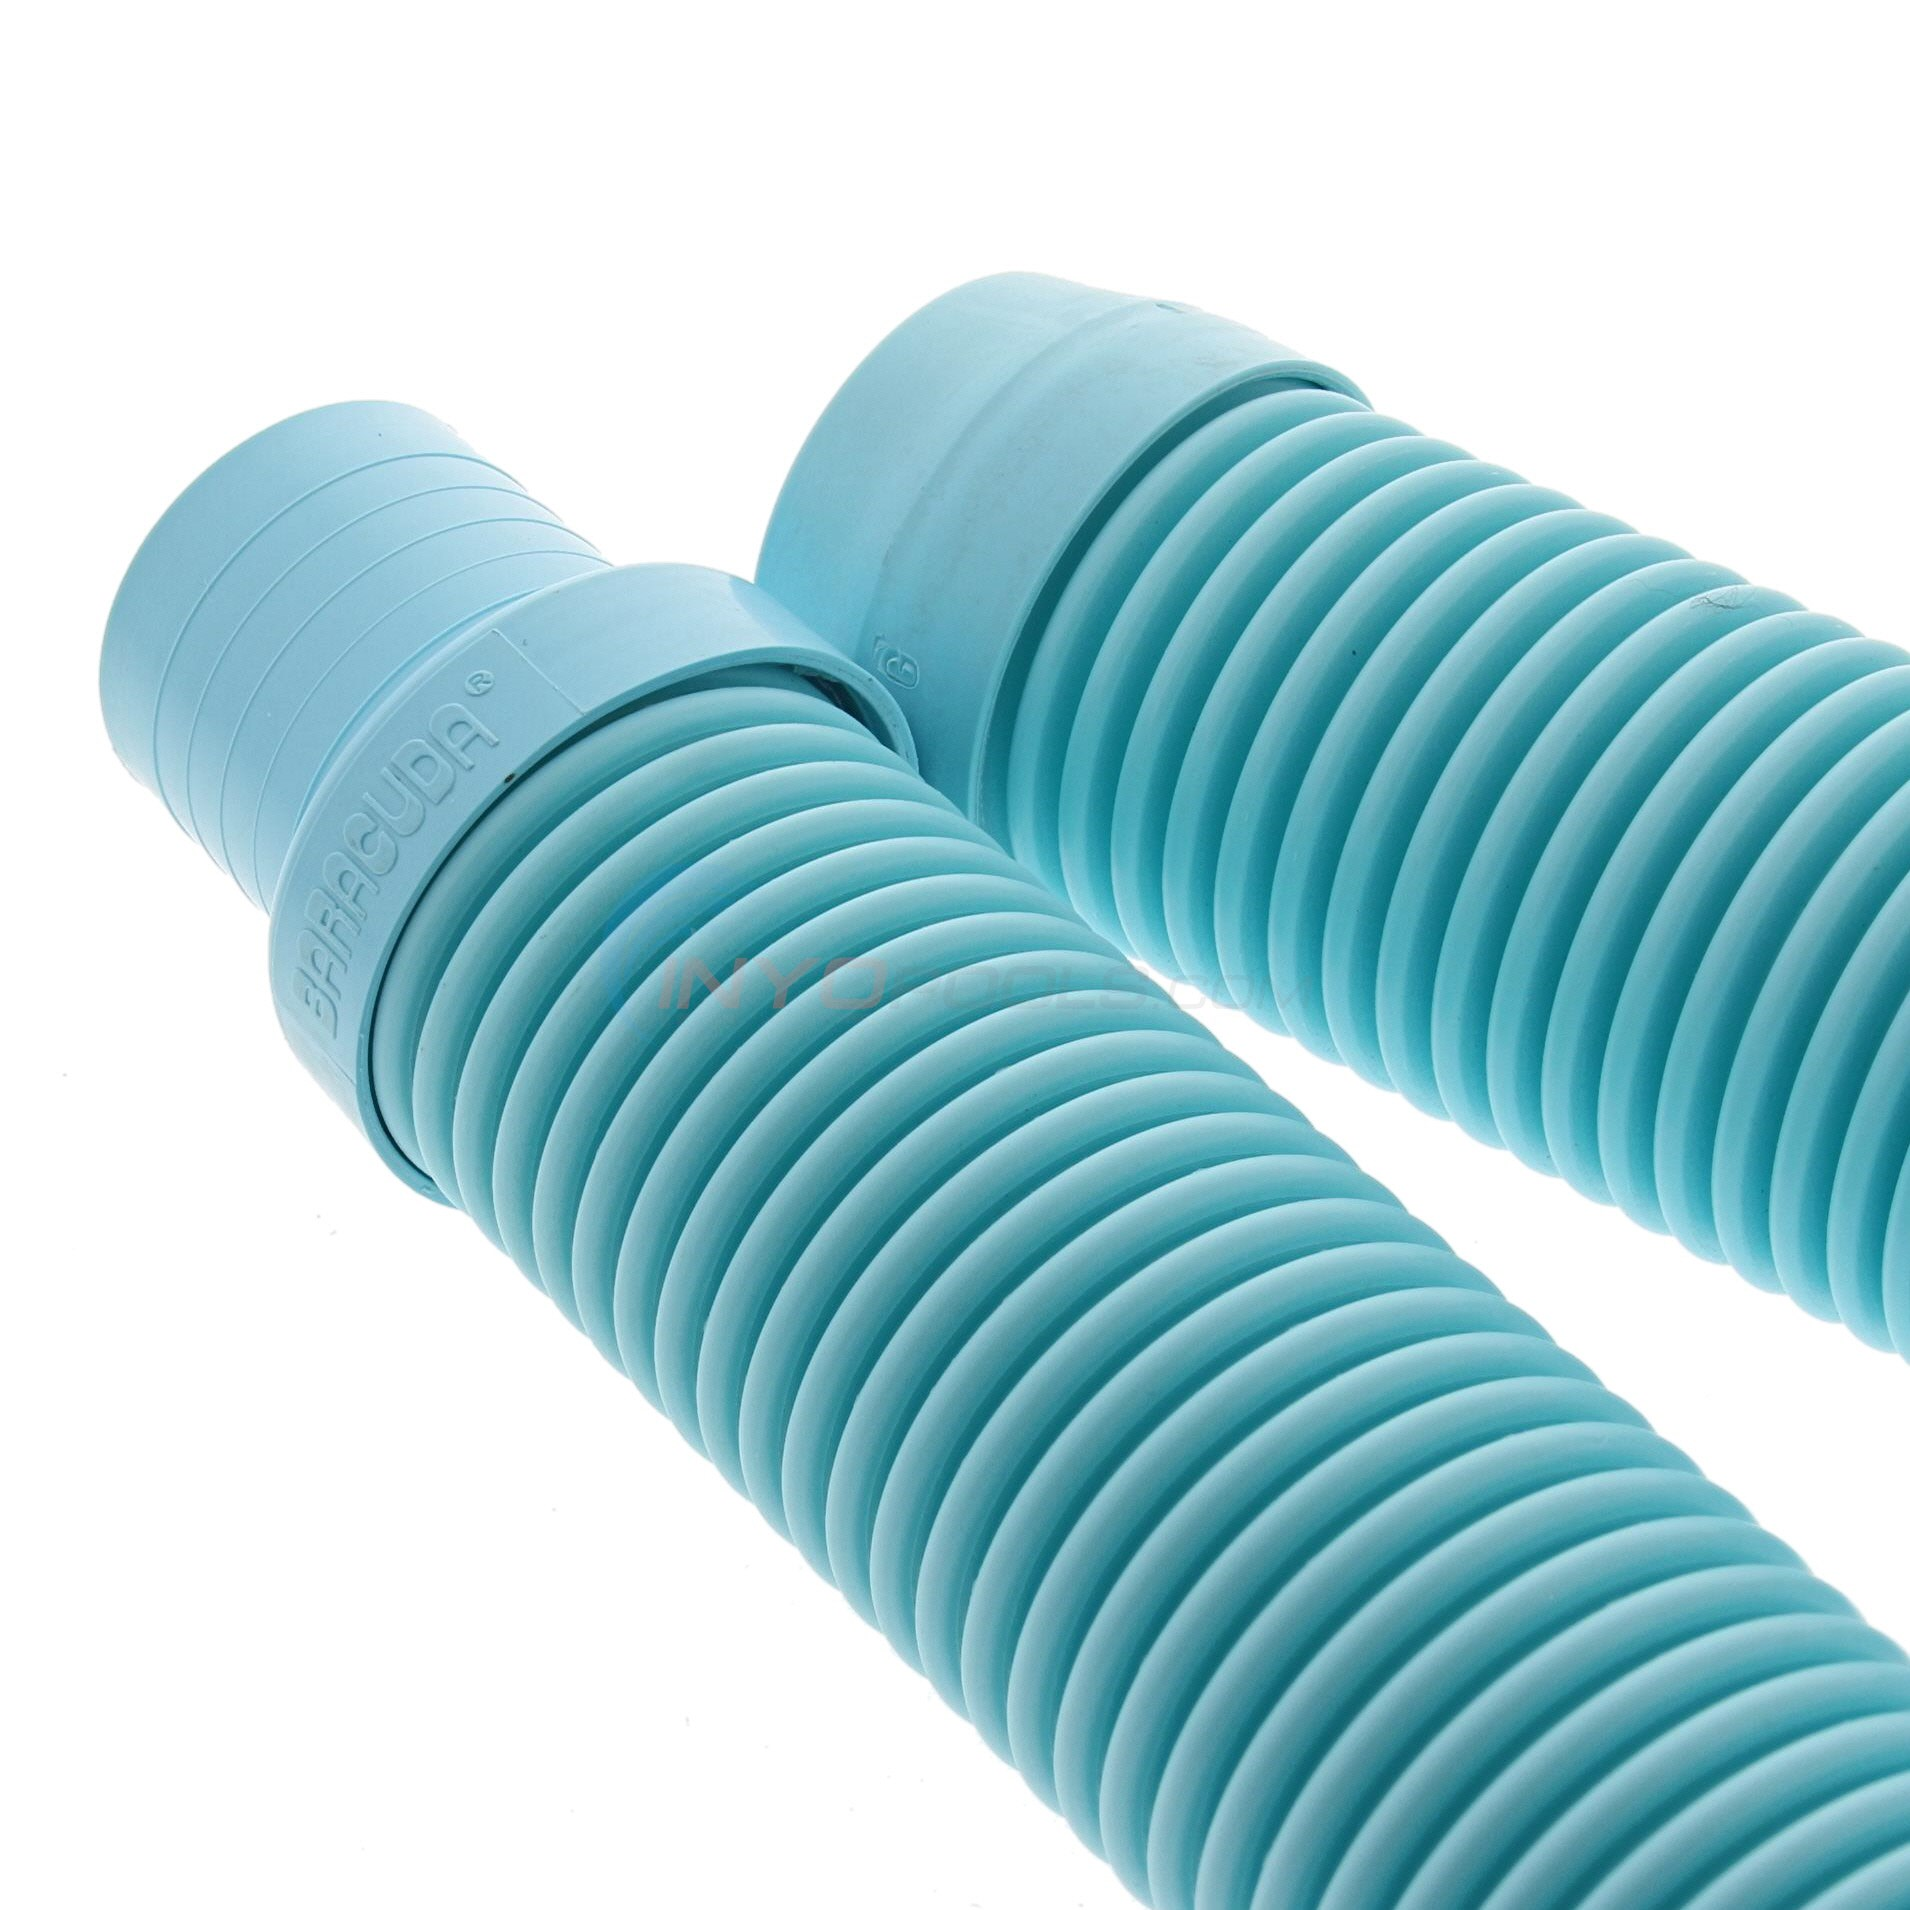 Baracuda Alpha 3 Single Hose 1 Meter (Aqua) - W20460